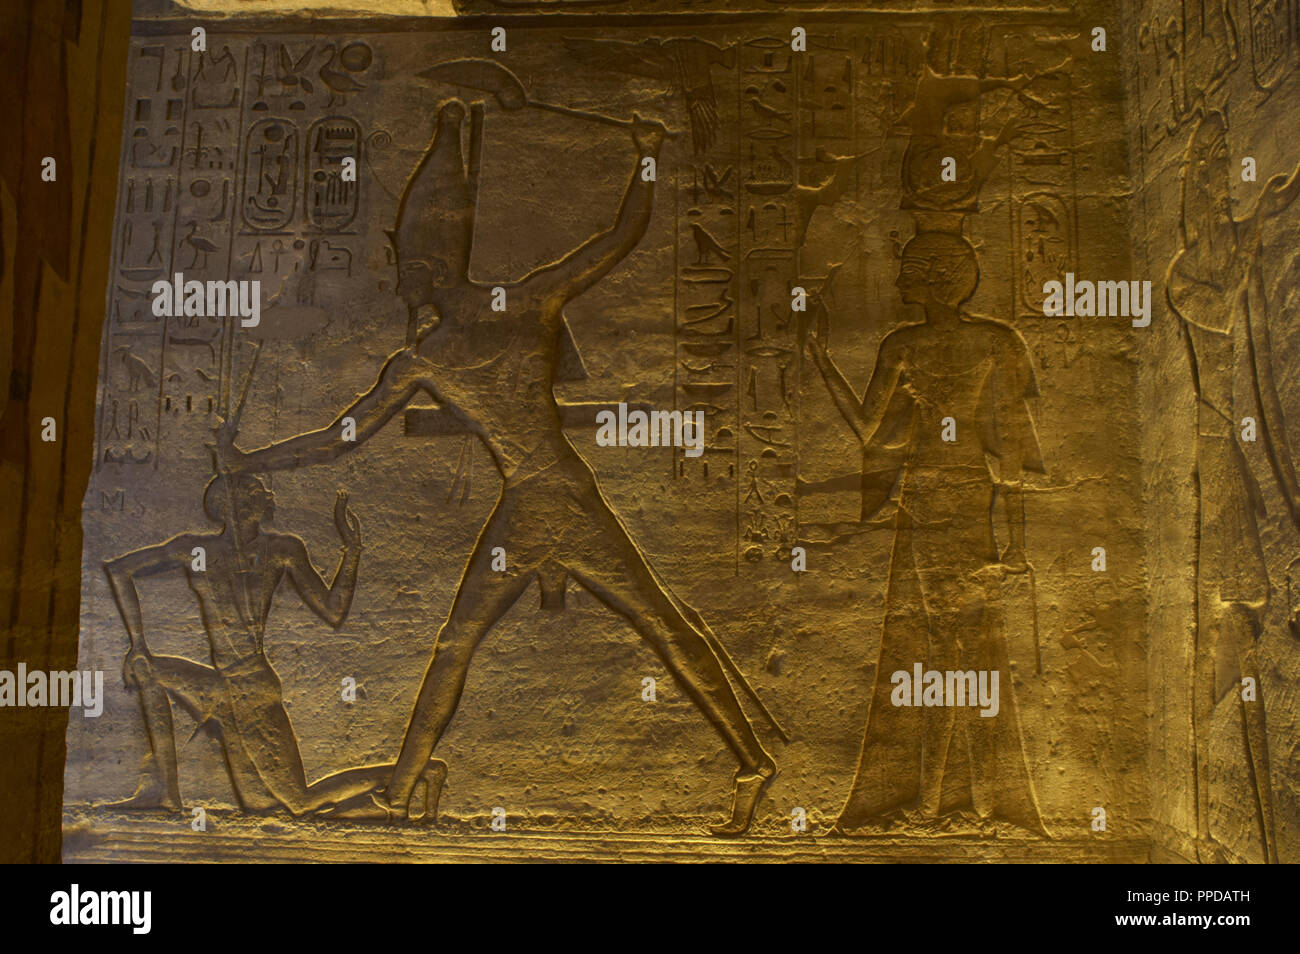 Egyptian art. Great Temple of Ramses II. 19th Dynasty. Relief depicting the victorious pharaoh Ramses II with an enemy been captured. 19th Dynasty. New Kingdom. Abu Simbel. Egypt. Stock Photo